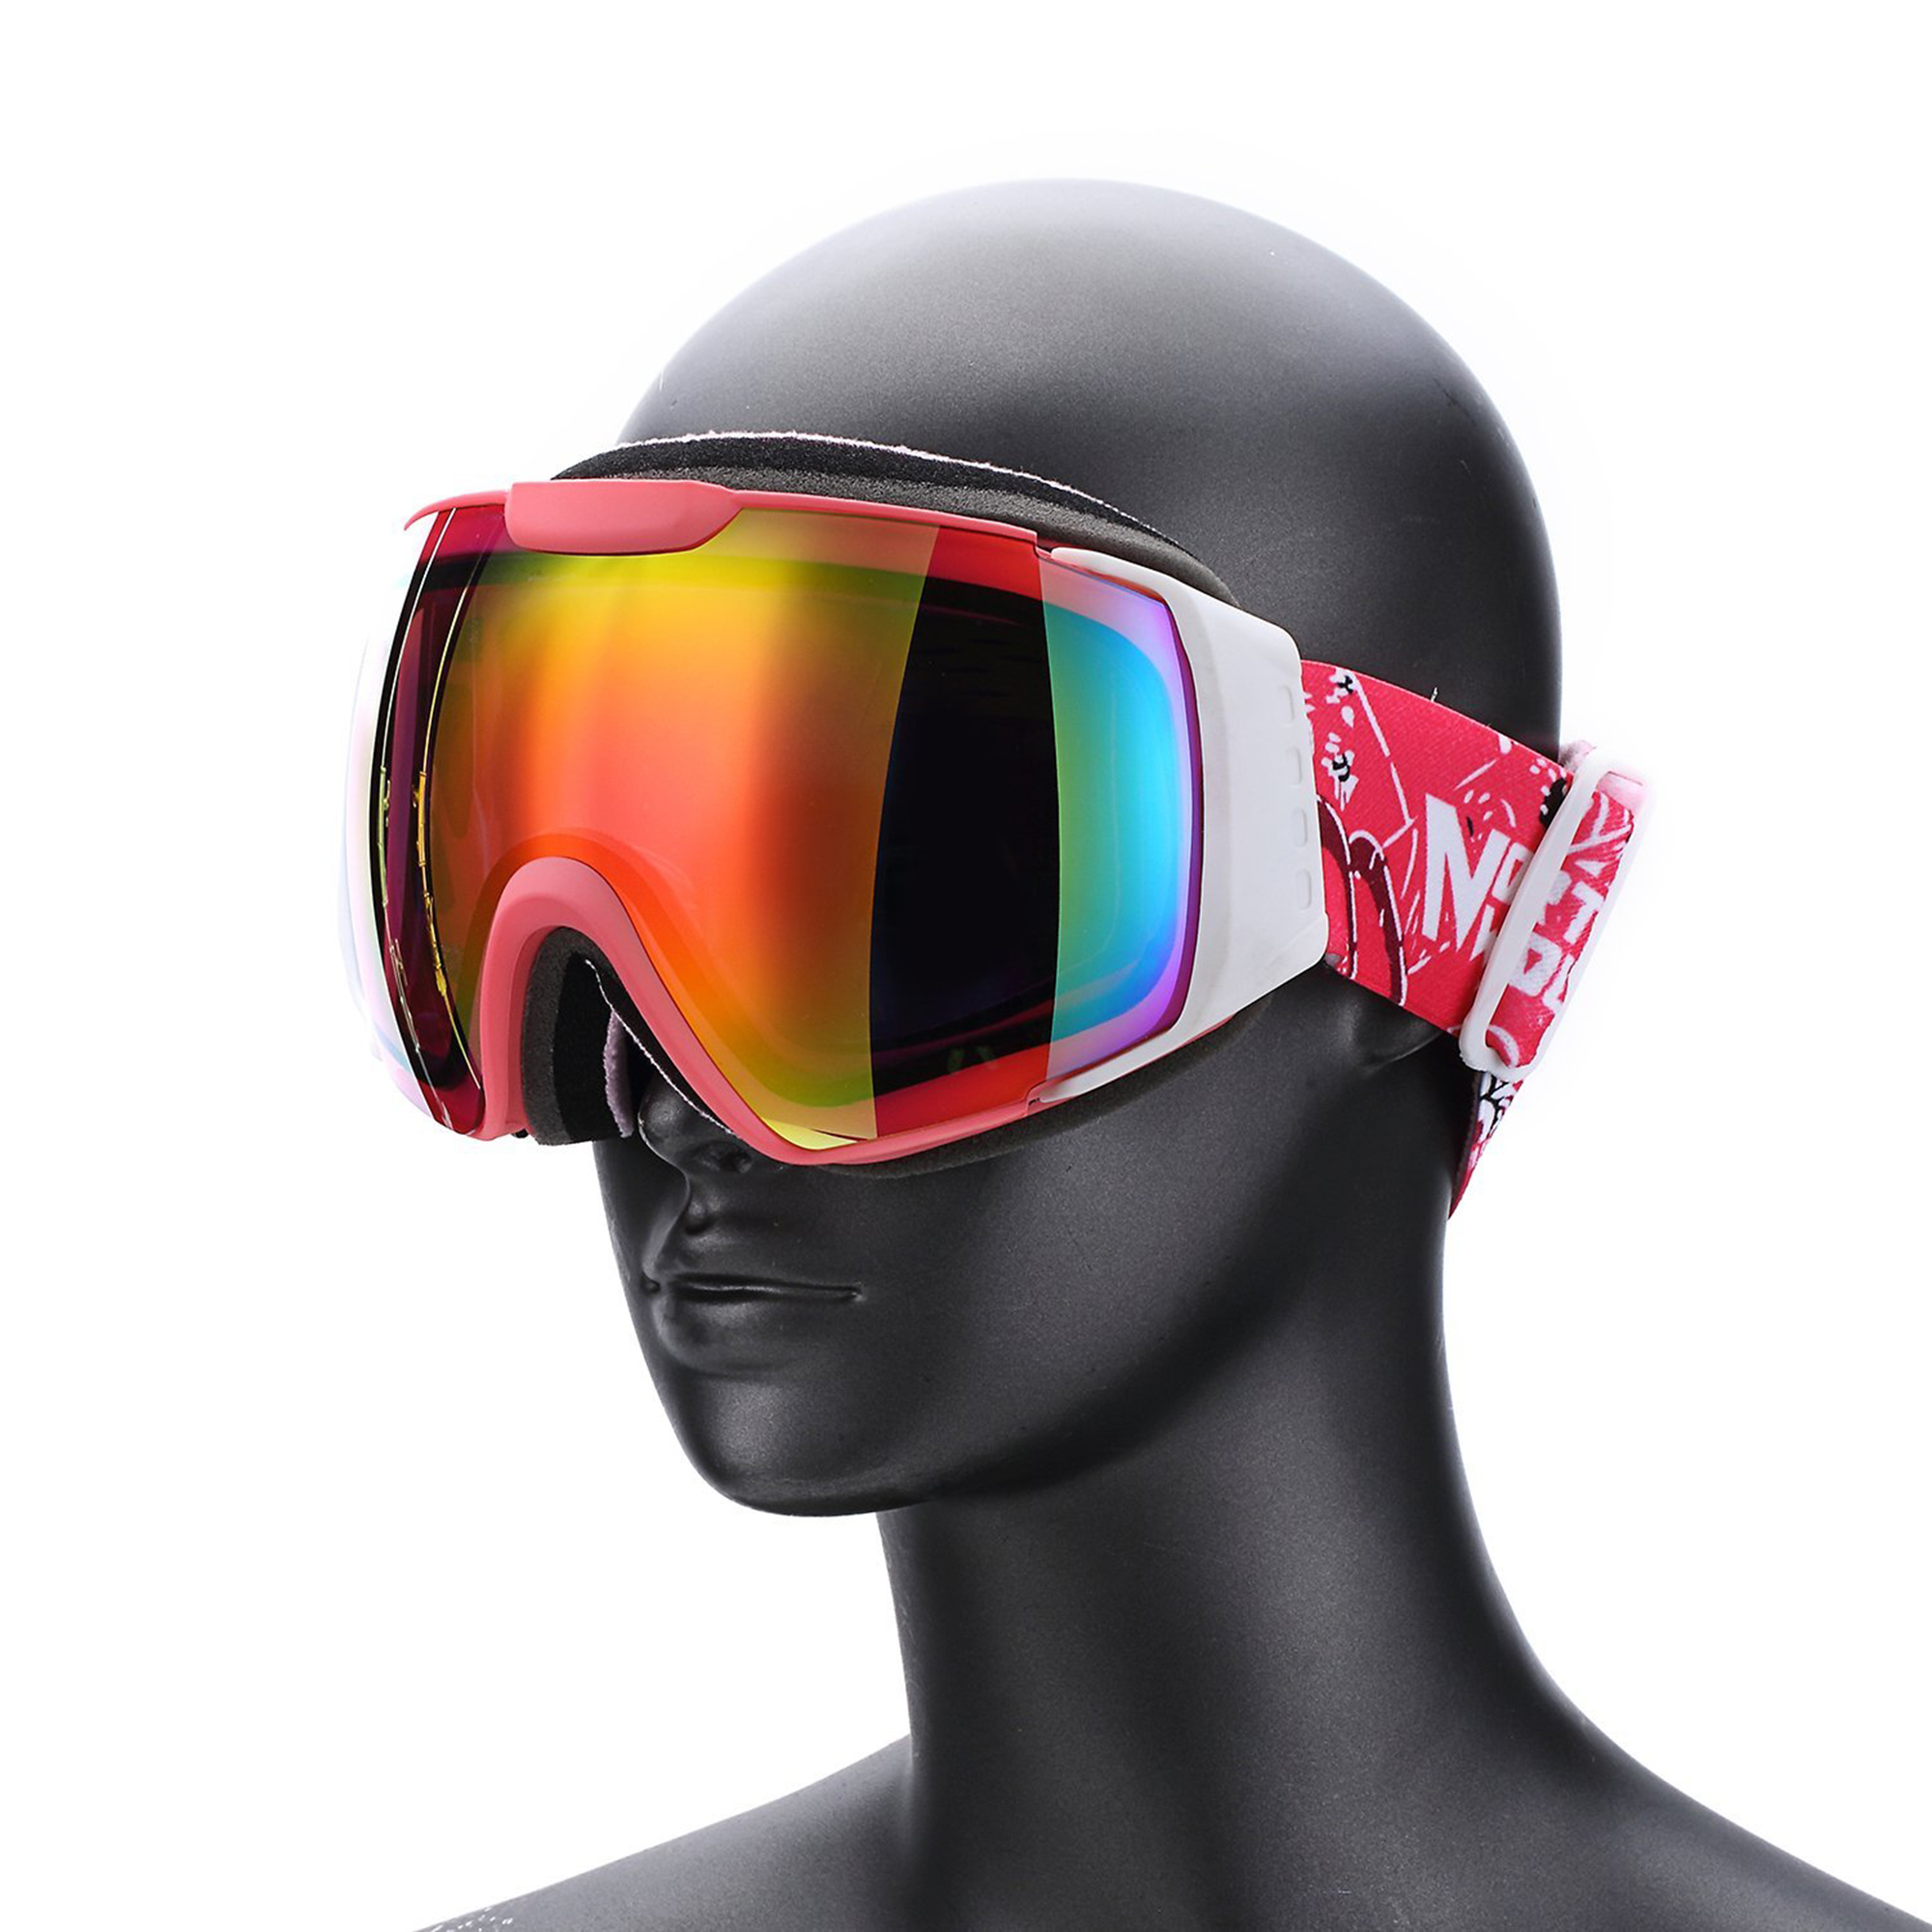 WEANAS Double Lens Anti-fog Snow Goggles Ski Goggles Eyewear, Lightweight Windproof Comfortable, for Snow, Skiing,... by Weanas